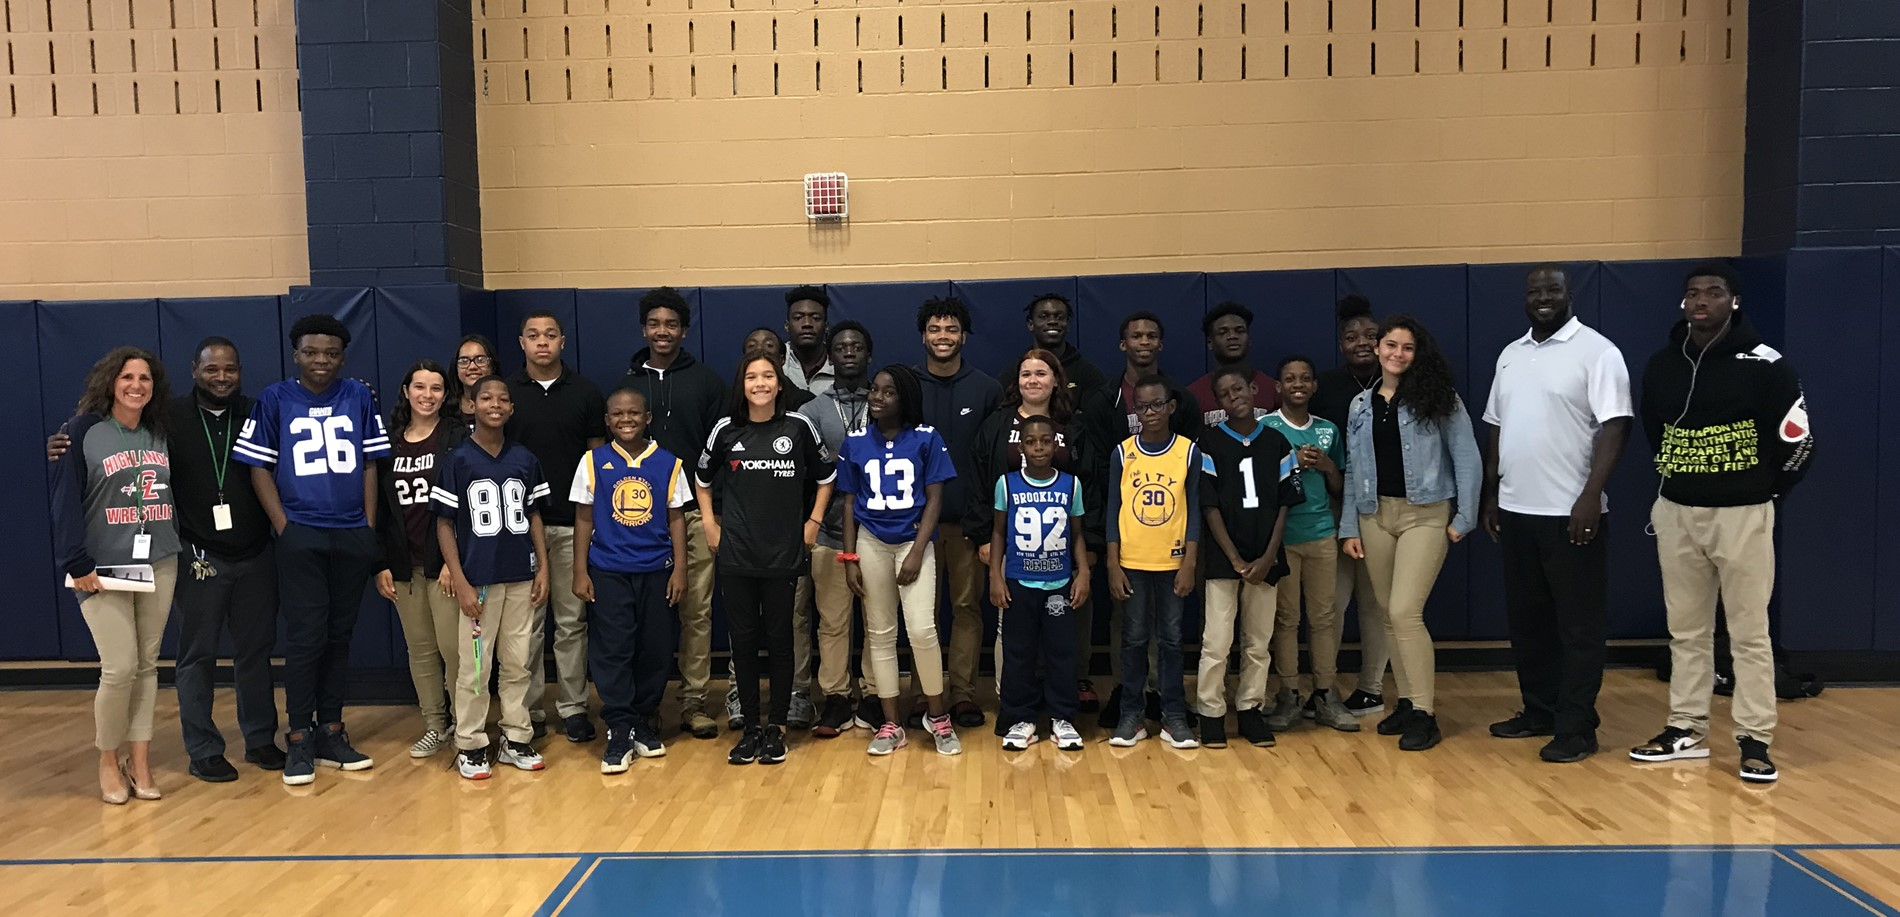 """Be a Team Player"" Assembly with Hillside HS on October 7, 2019"